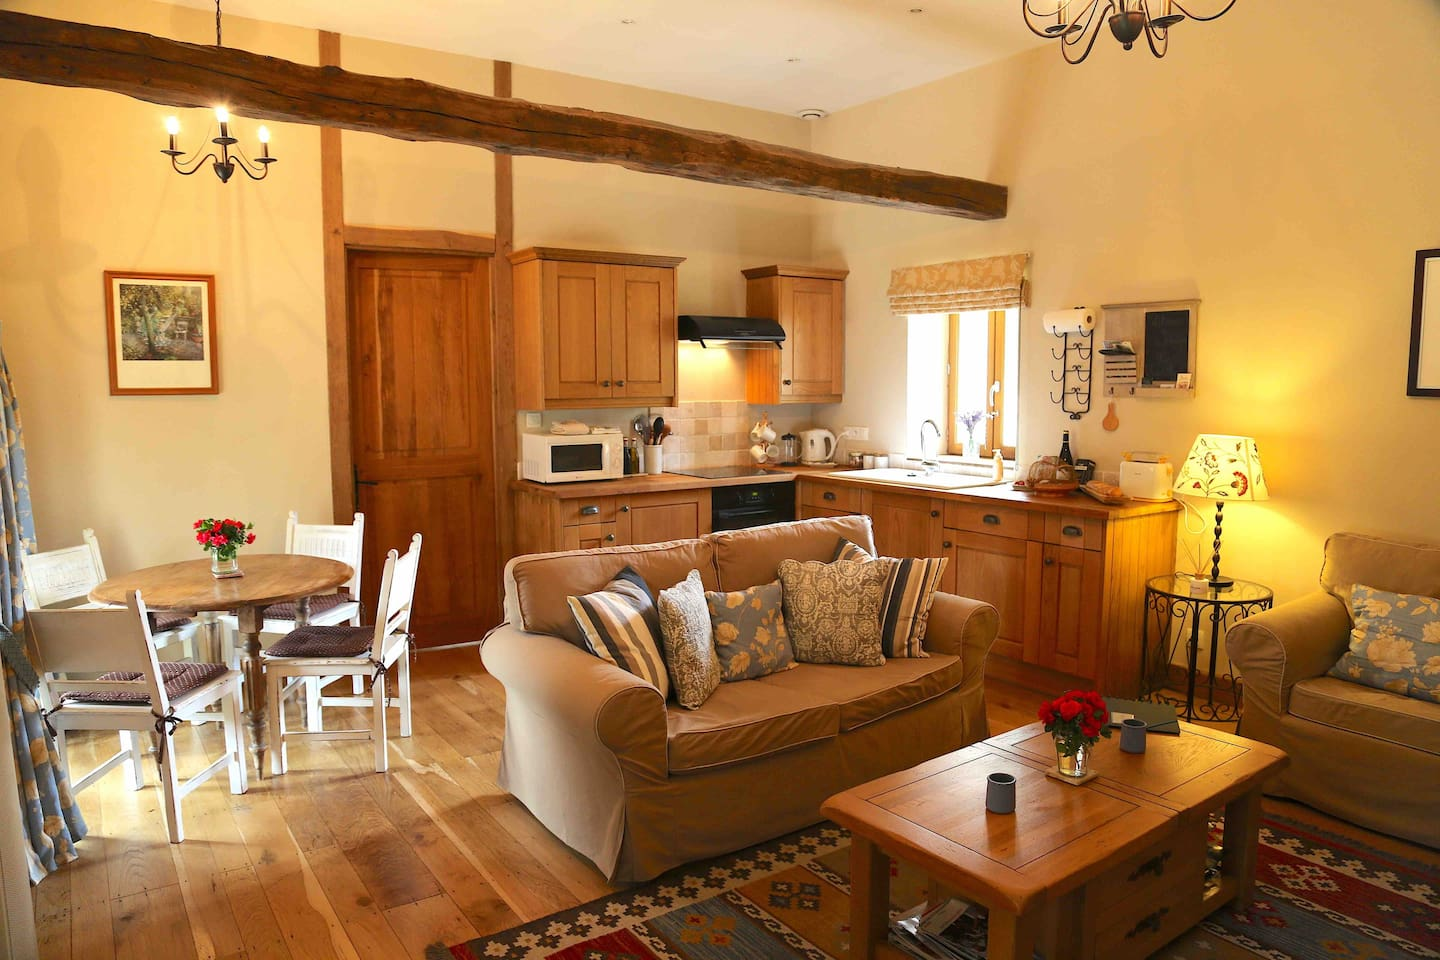 The lounge and kitchen